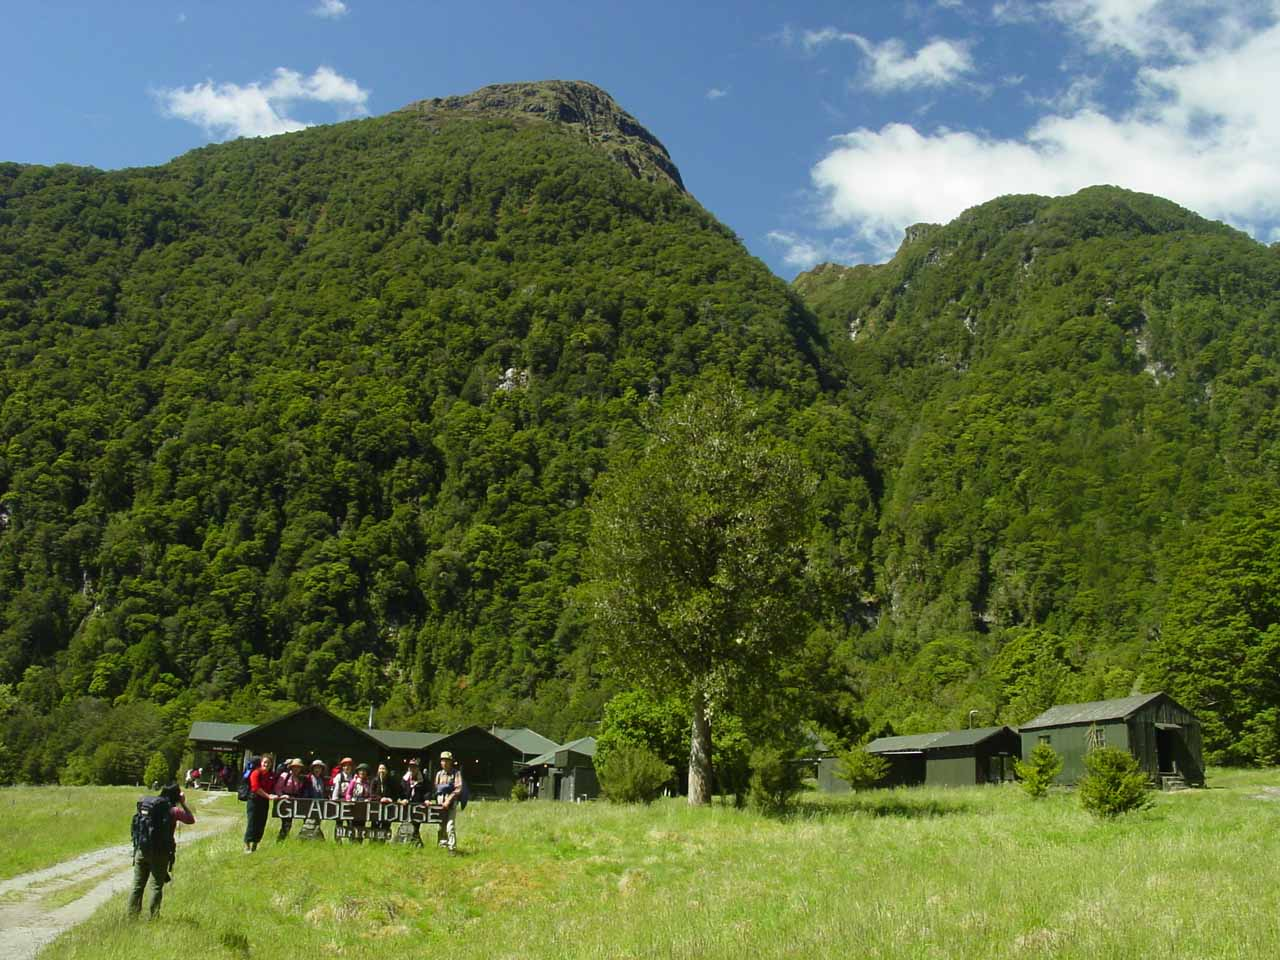 Approaching the Glade House for our first night on the Milford Track